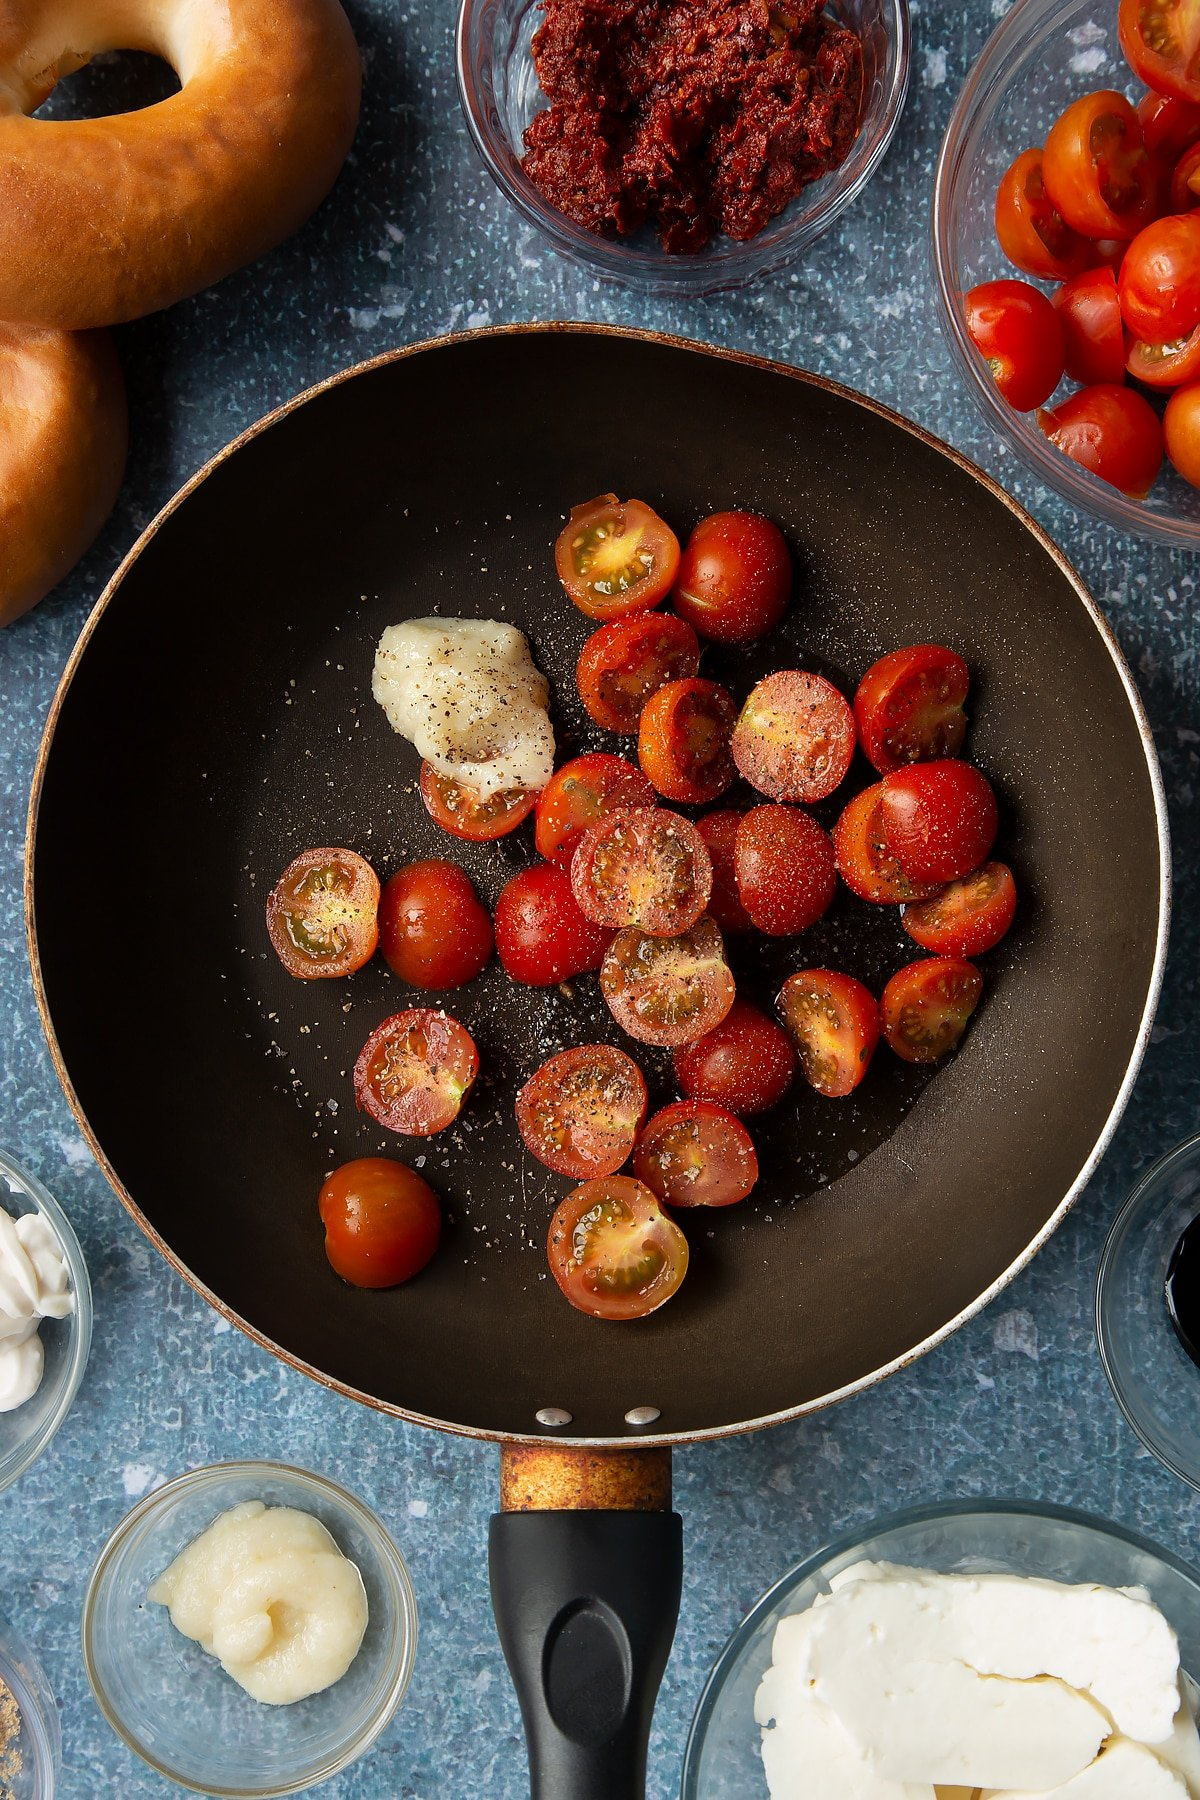 Oil, cherry tomatoes, garlic and pepper in a frying pan. Ingredients to make halloumi bagels surround the pan.